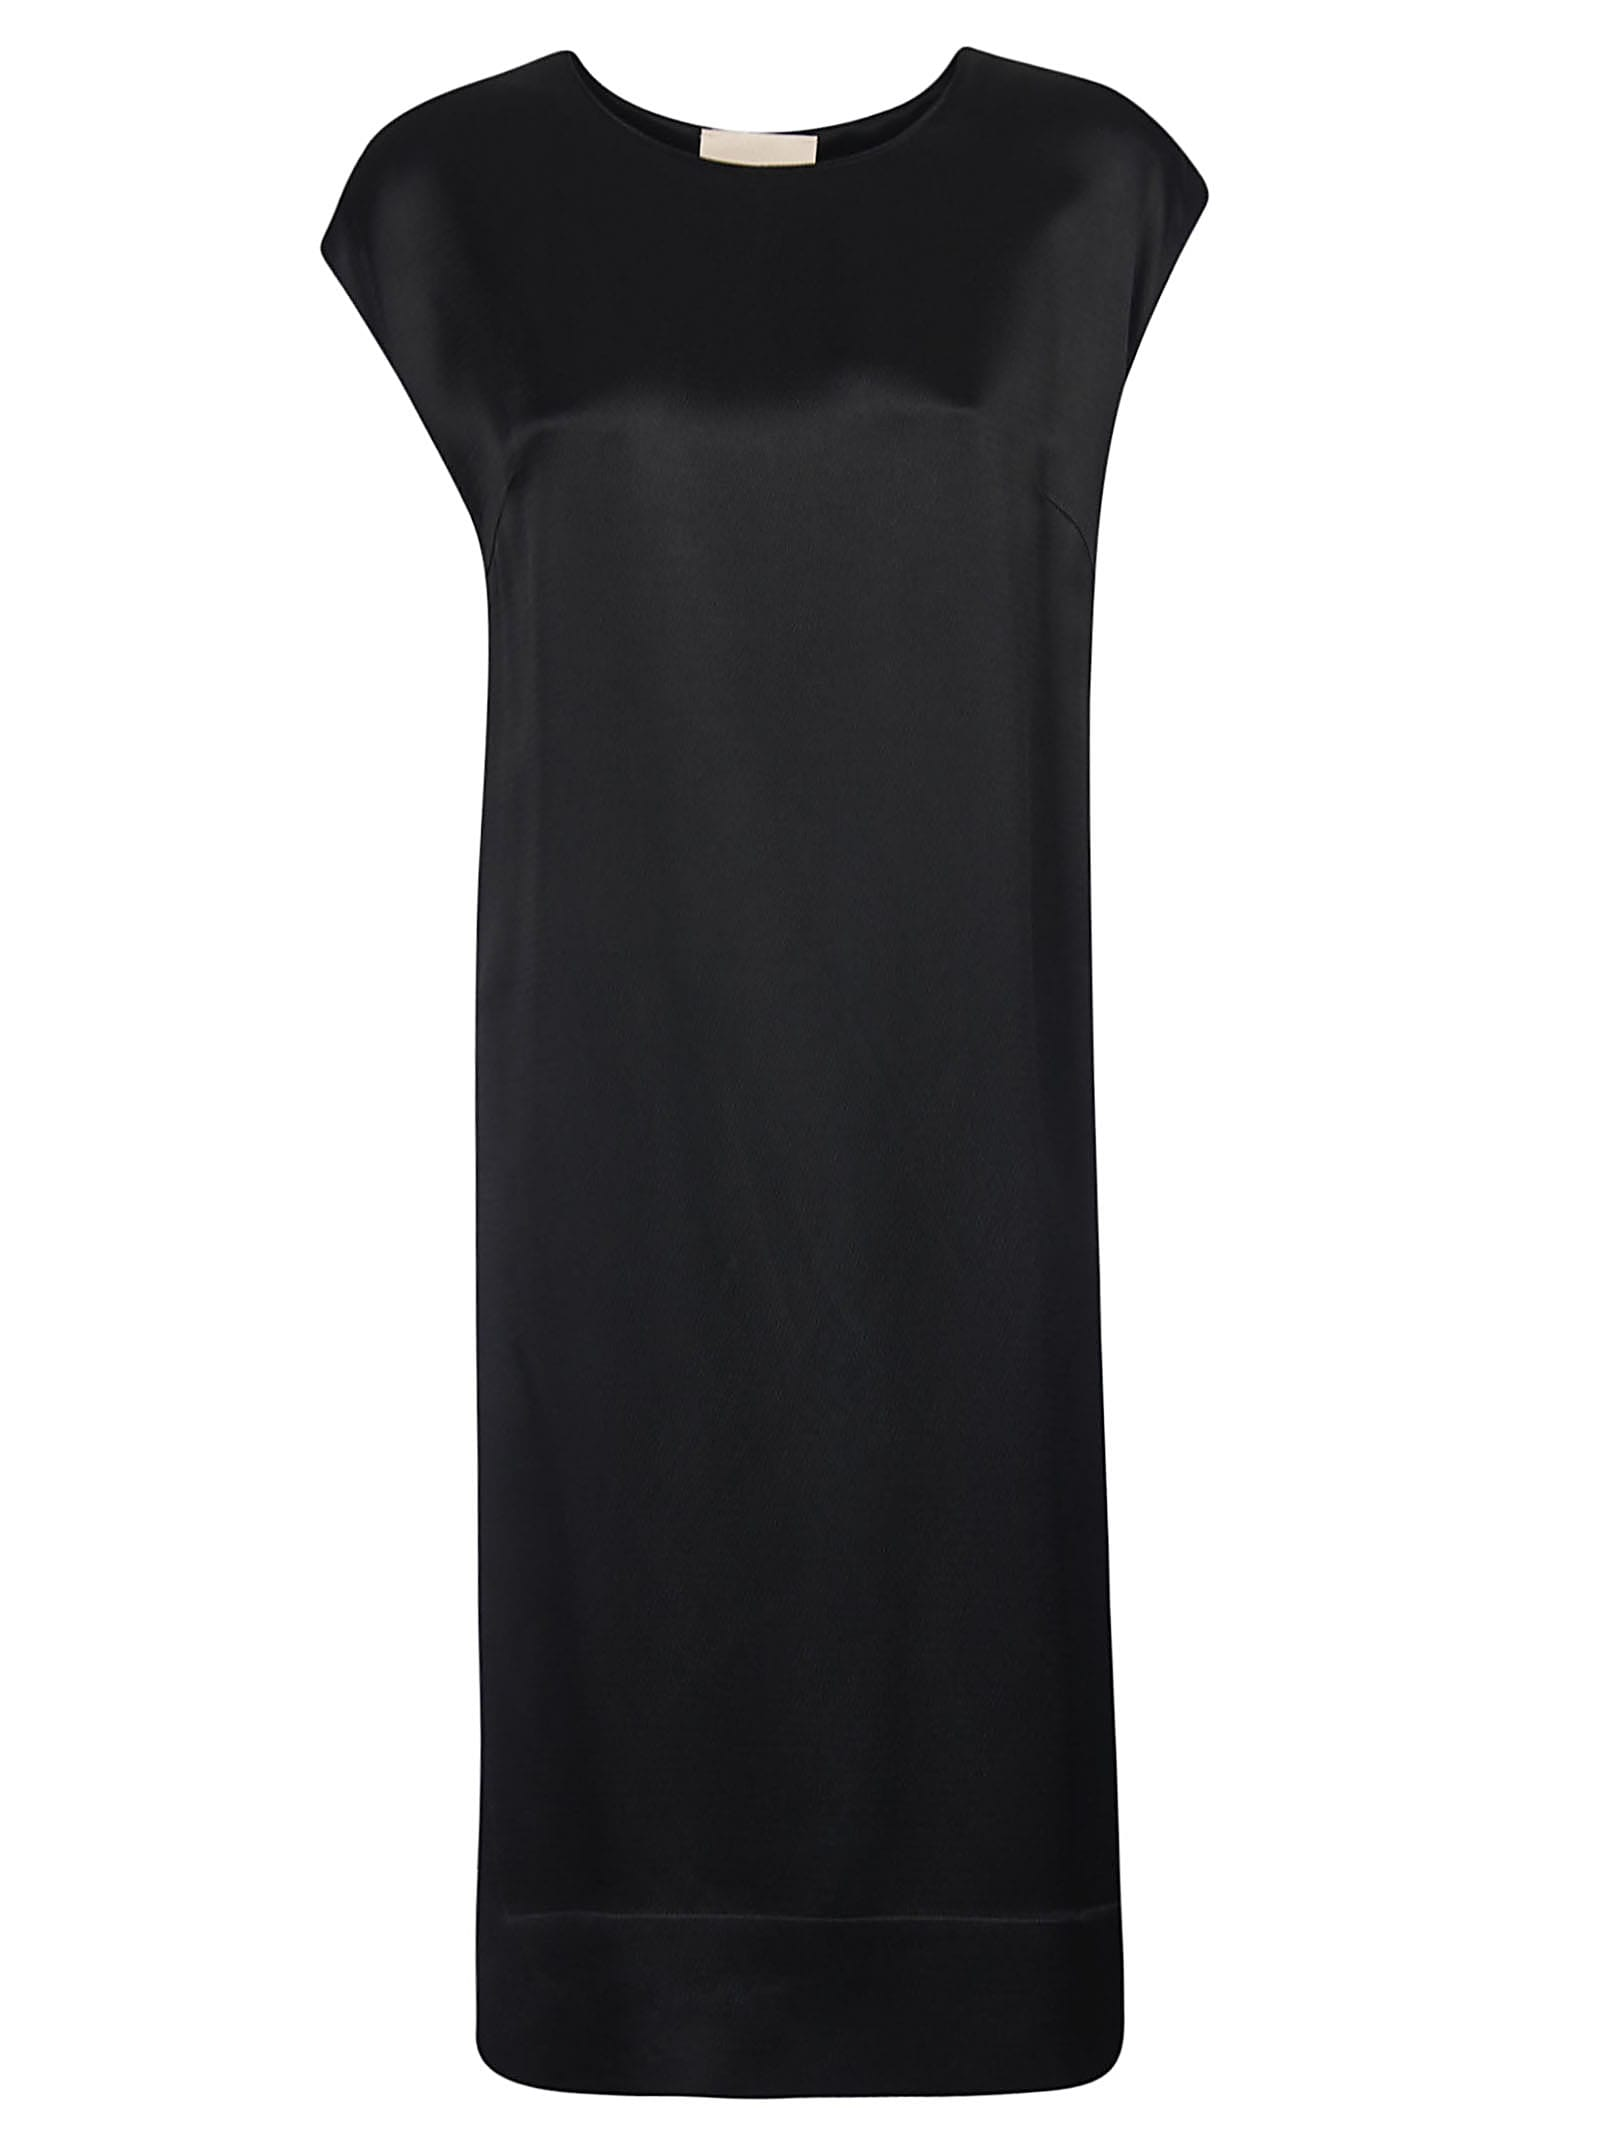 Erika Cavallini Long Length Dress